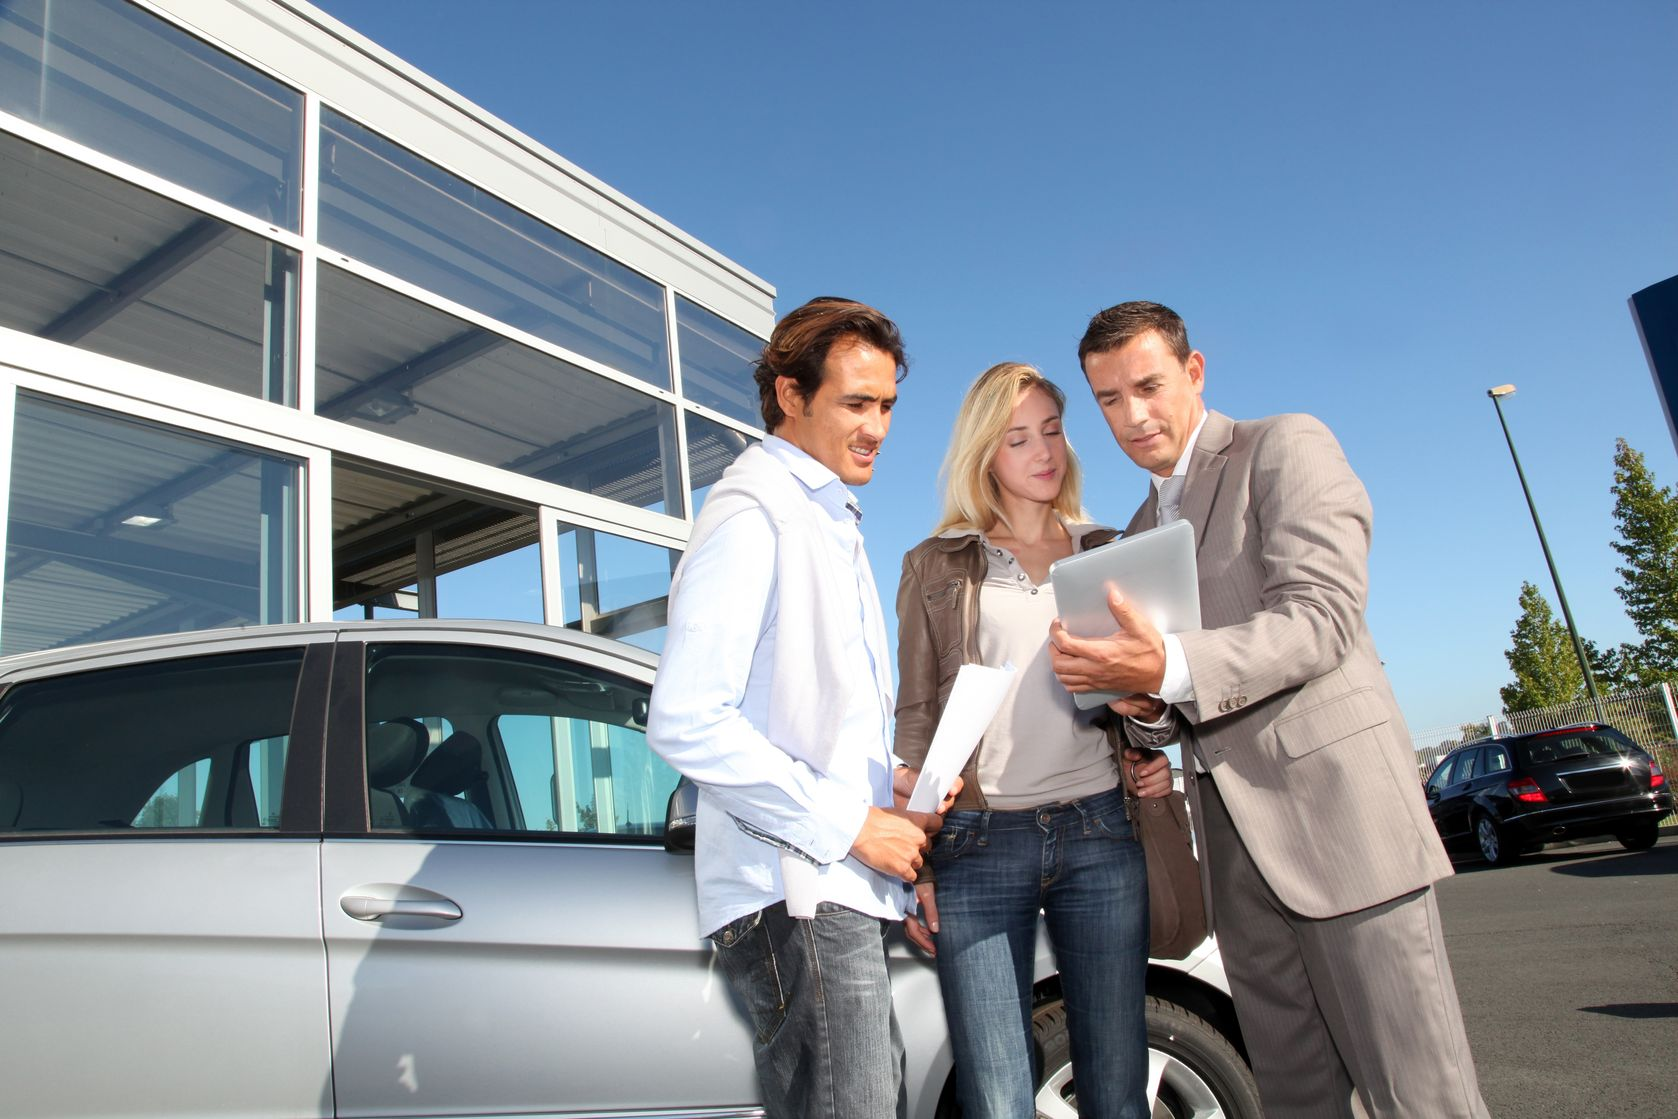 Panama City Auto Dealers Insurance